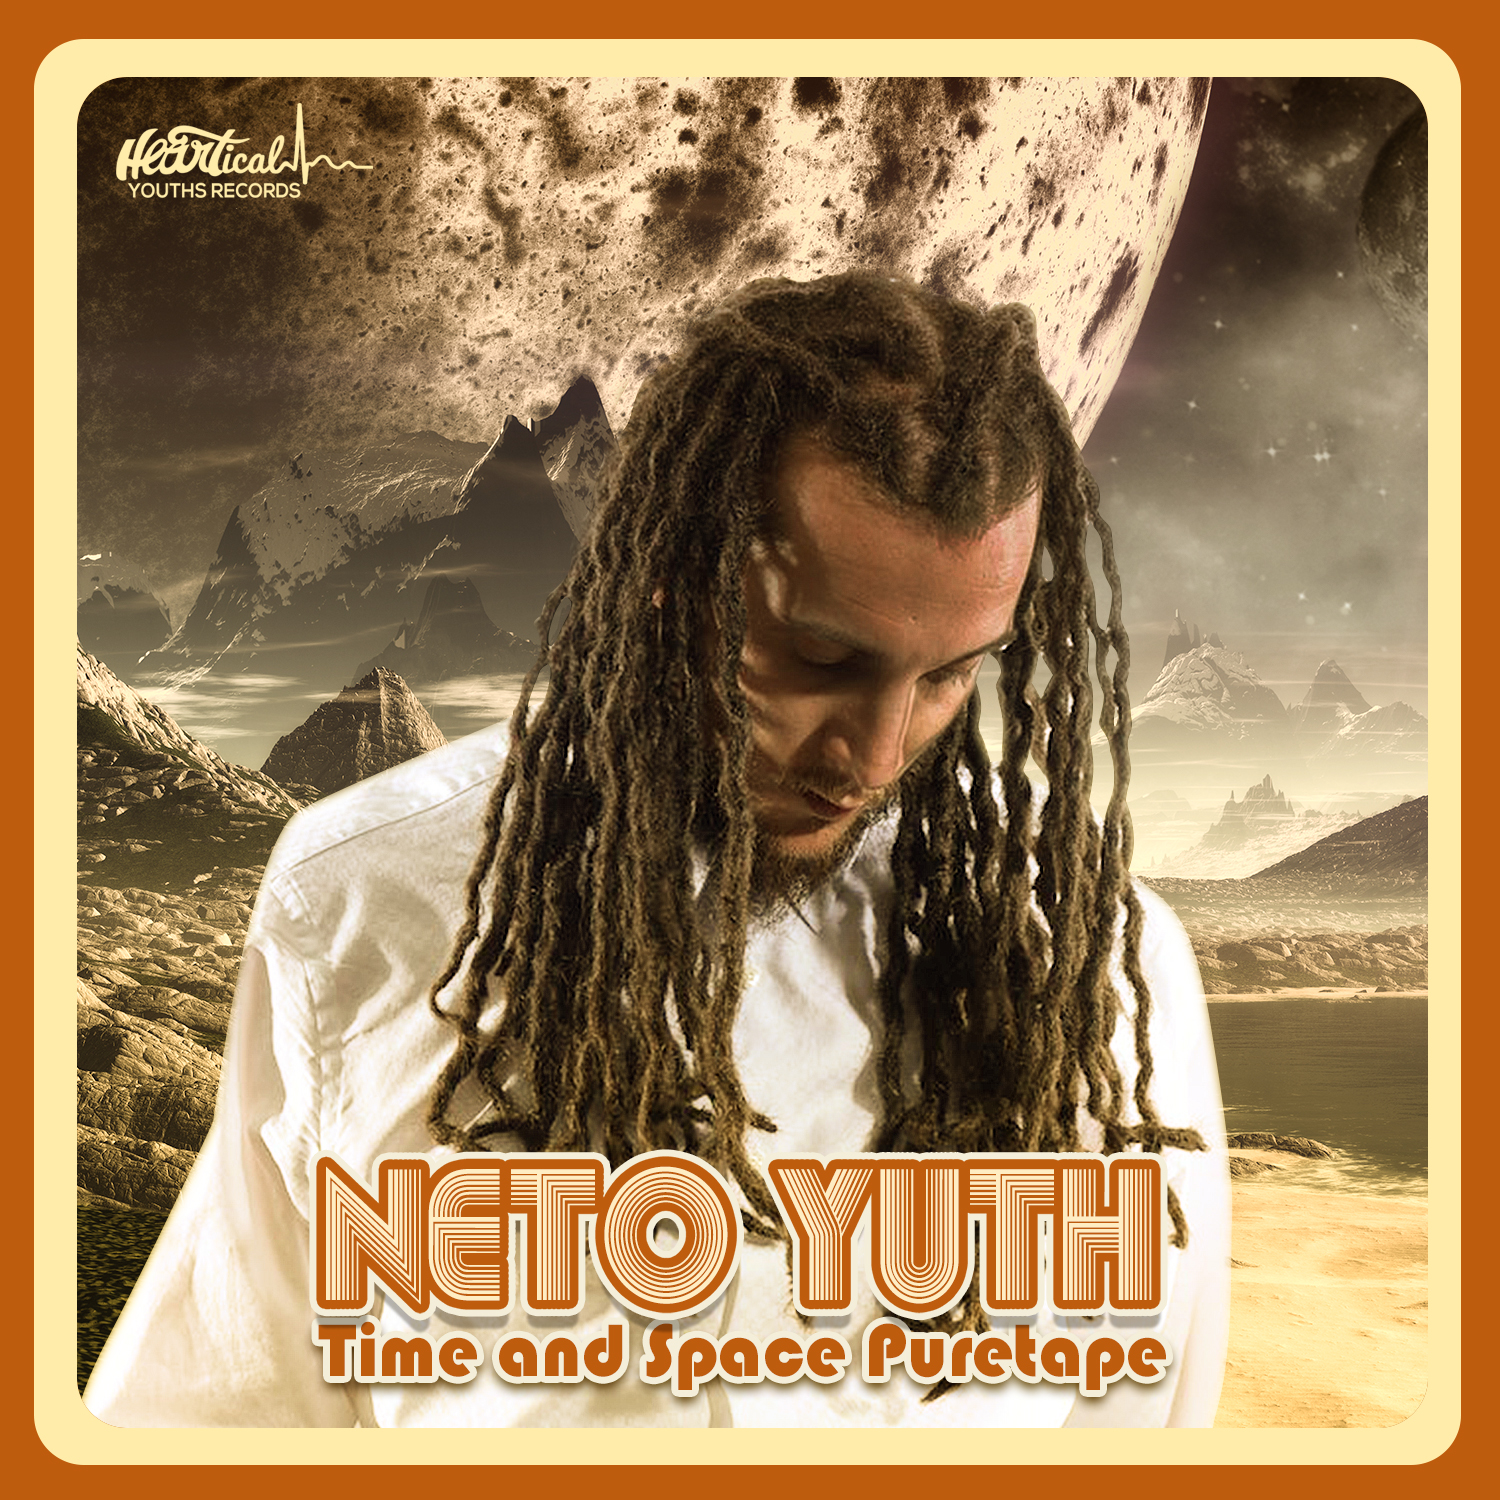 Ti     Time and Space Puretape   by  Neto Yuth   Stream  + Purchase your  Digital  copy today!